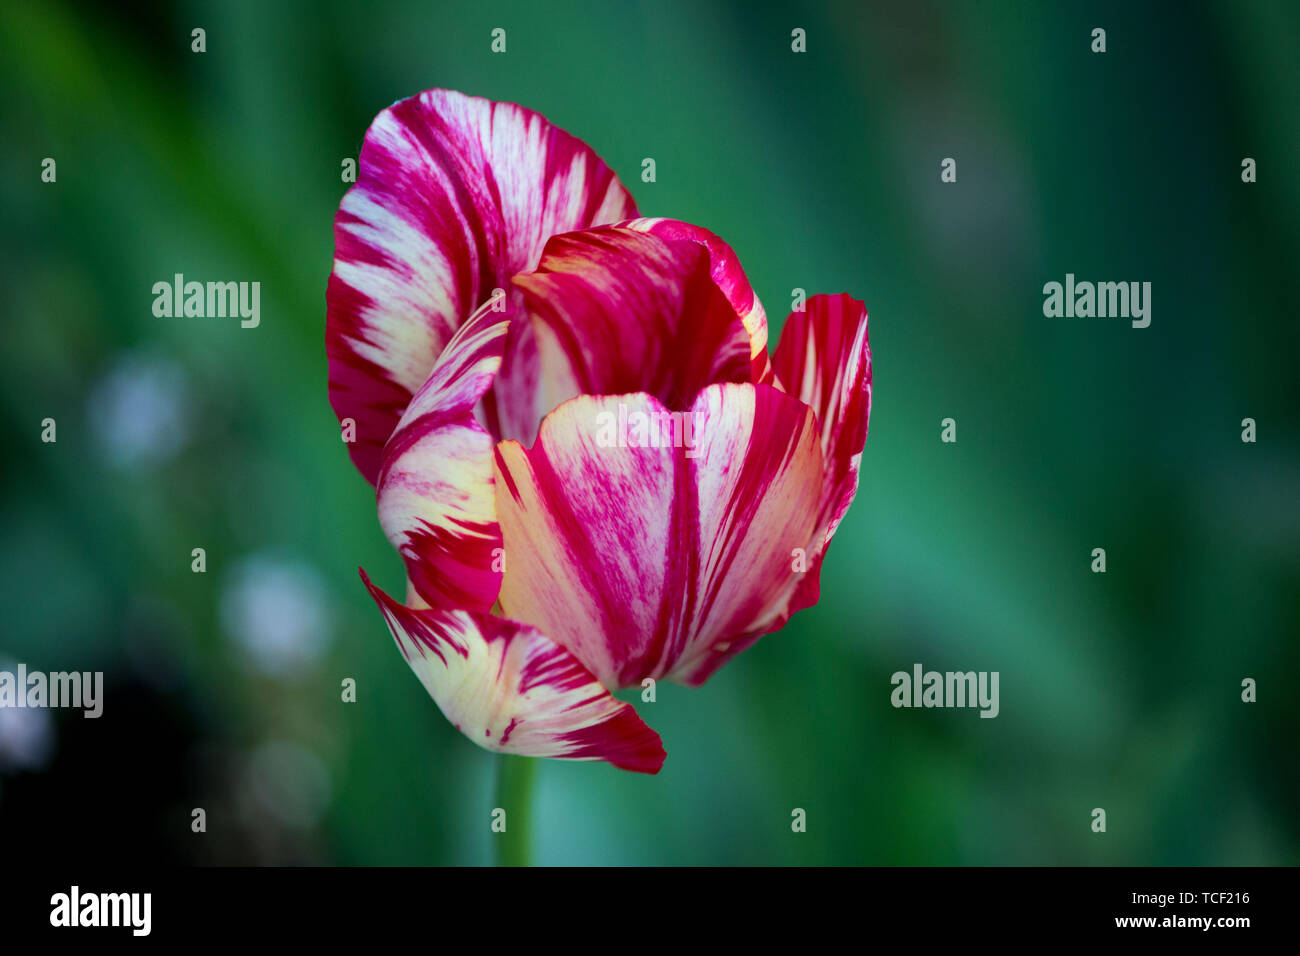 one blooming motley bright pink tulip with white veins on a flower bed Stock Photo